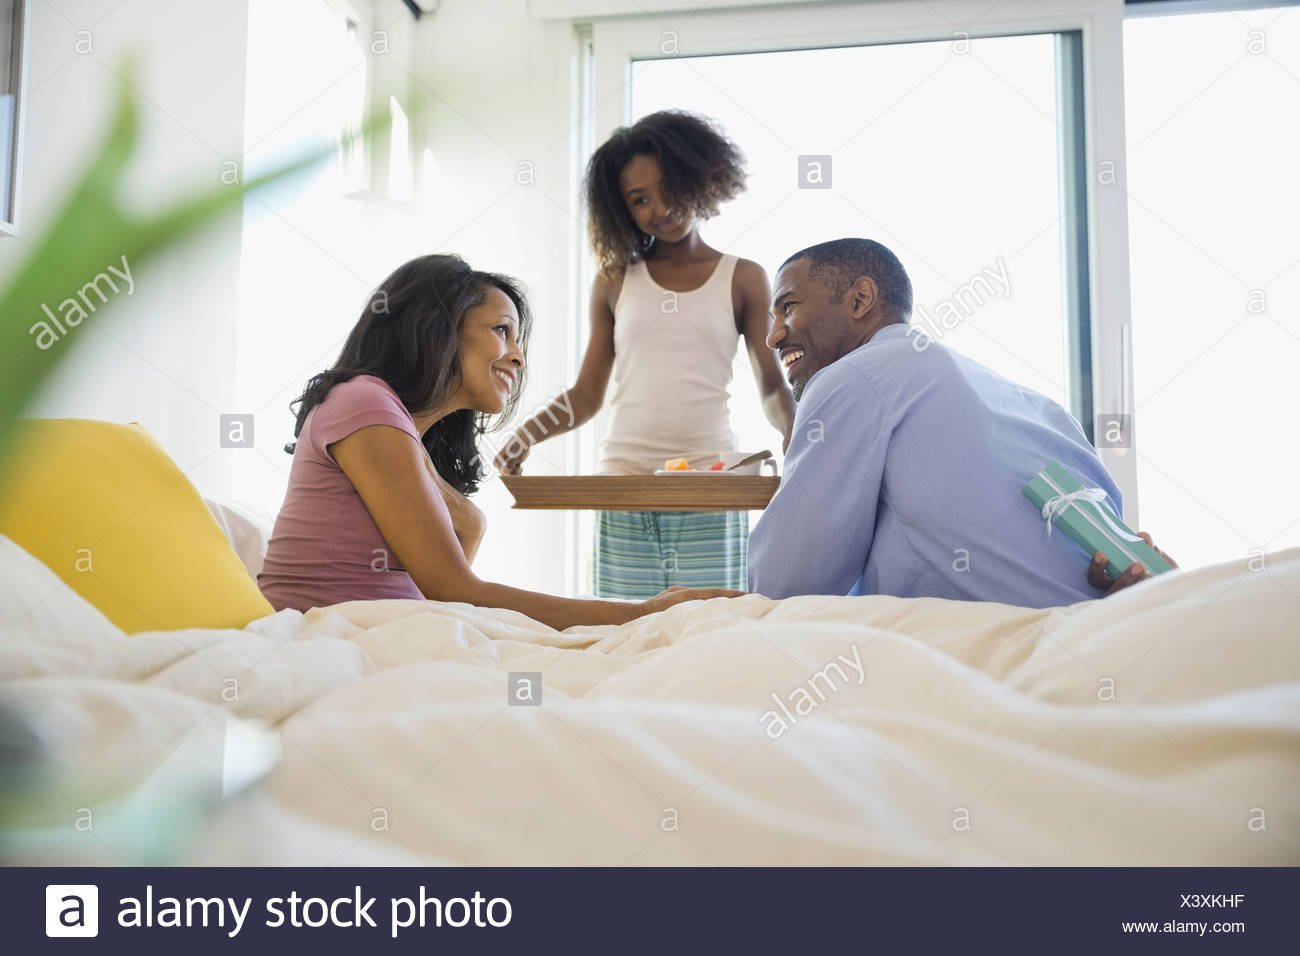 Family surprising woman with birthday breakfast in bed - Stock Image